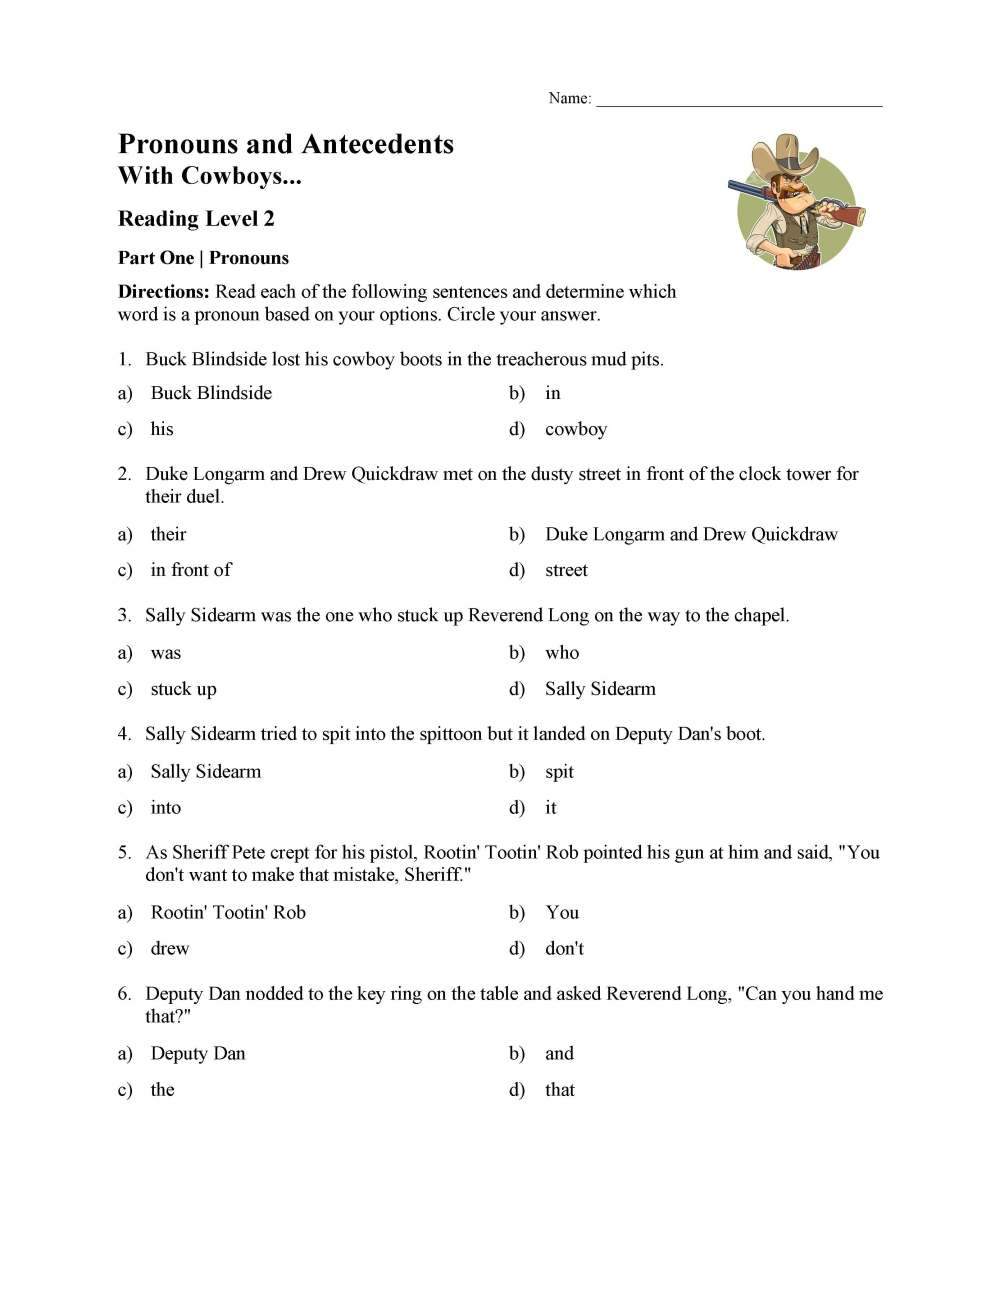 medium resolution of Pronoun and Antecedent Test - With Cowboys   Reading Level 2   Preview